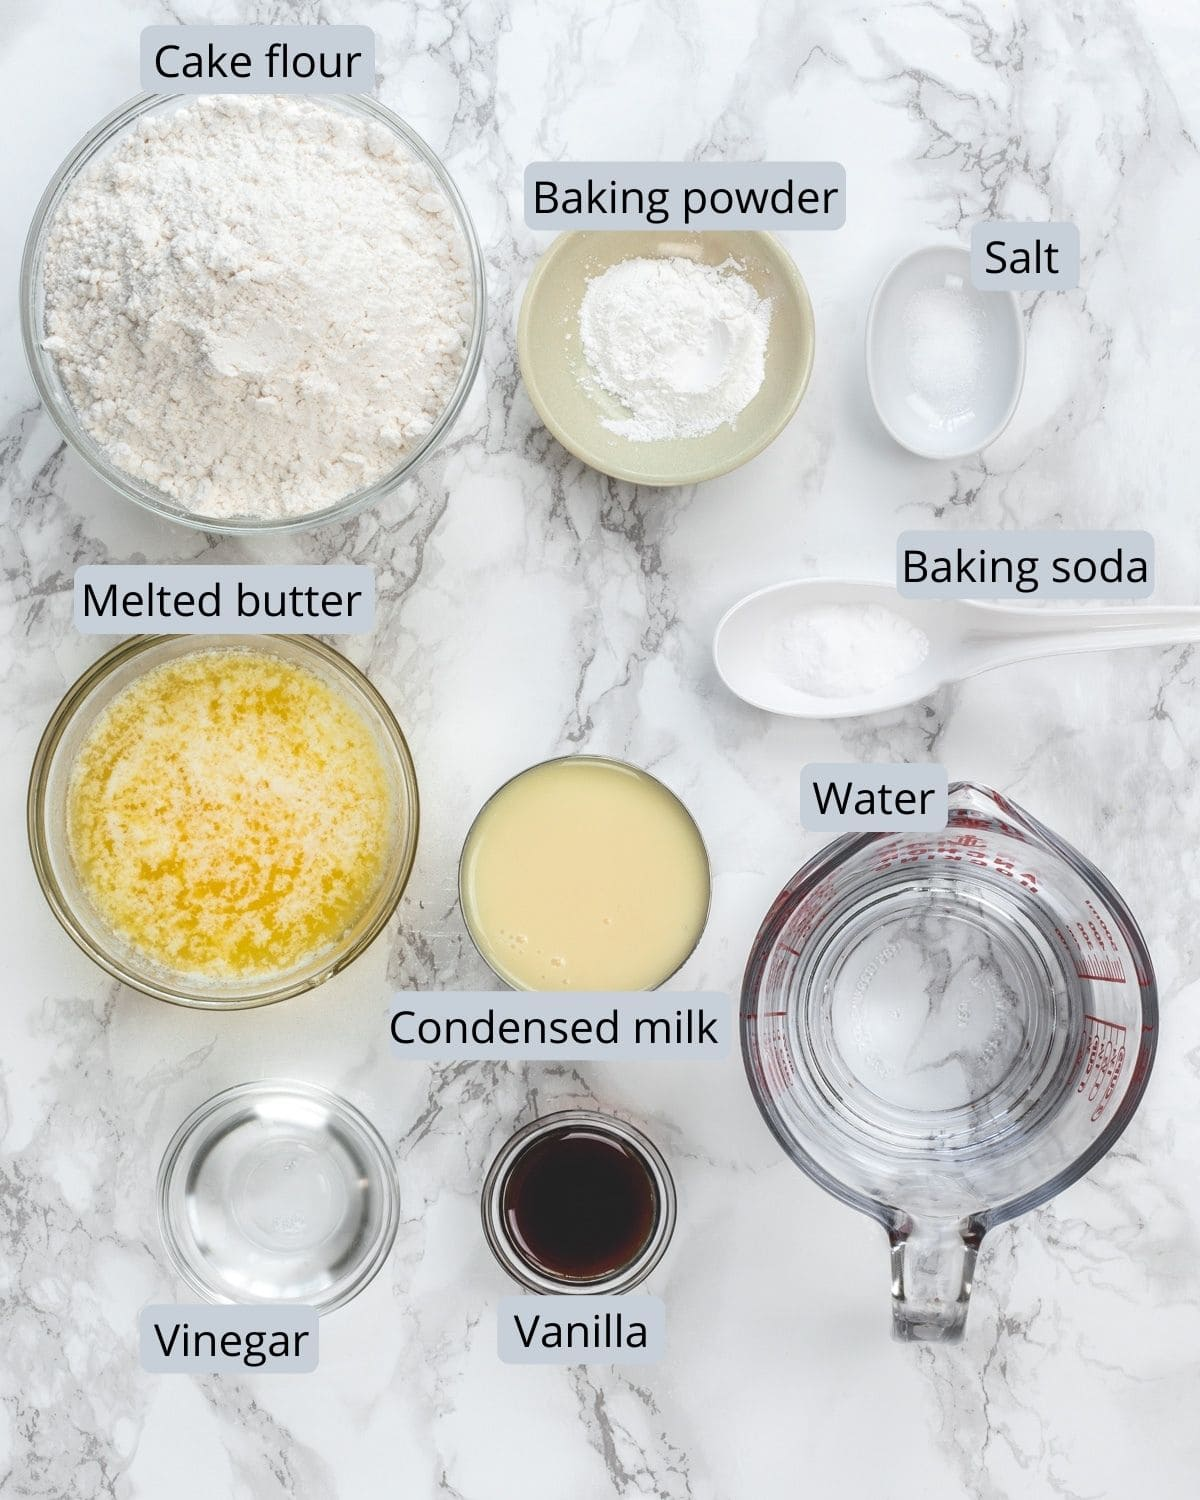 Ingredients use for eggless vanilla cake recipe in individual bowls.